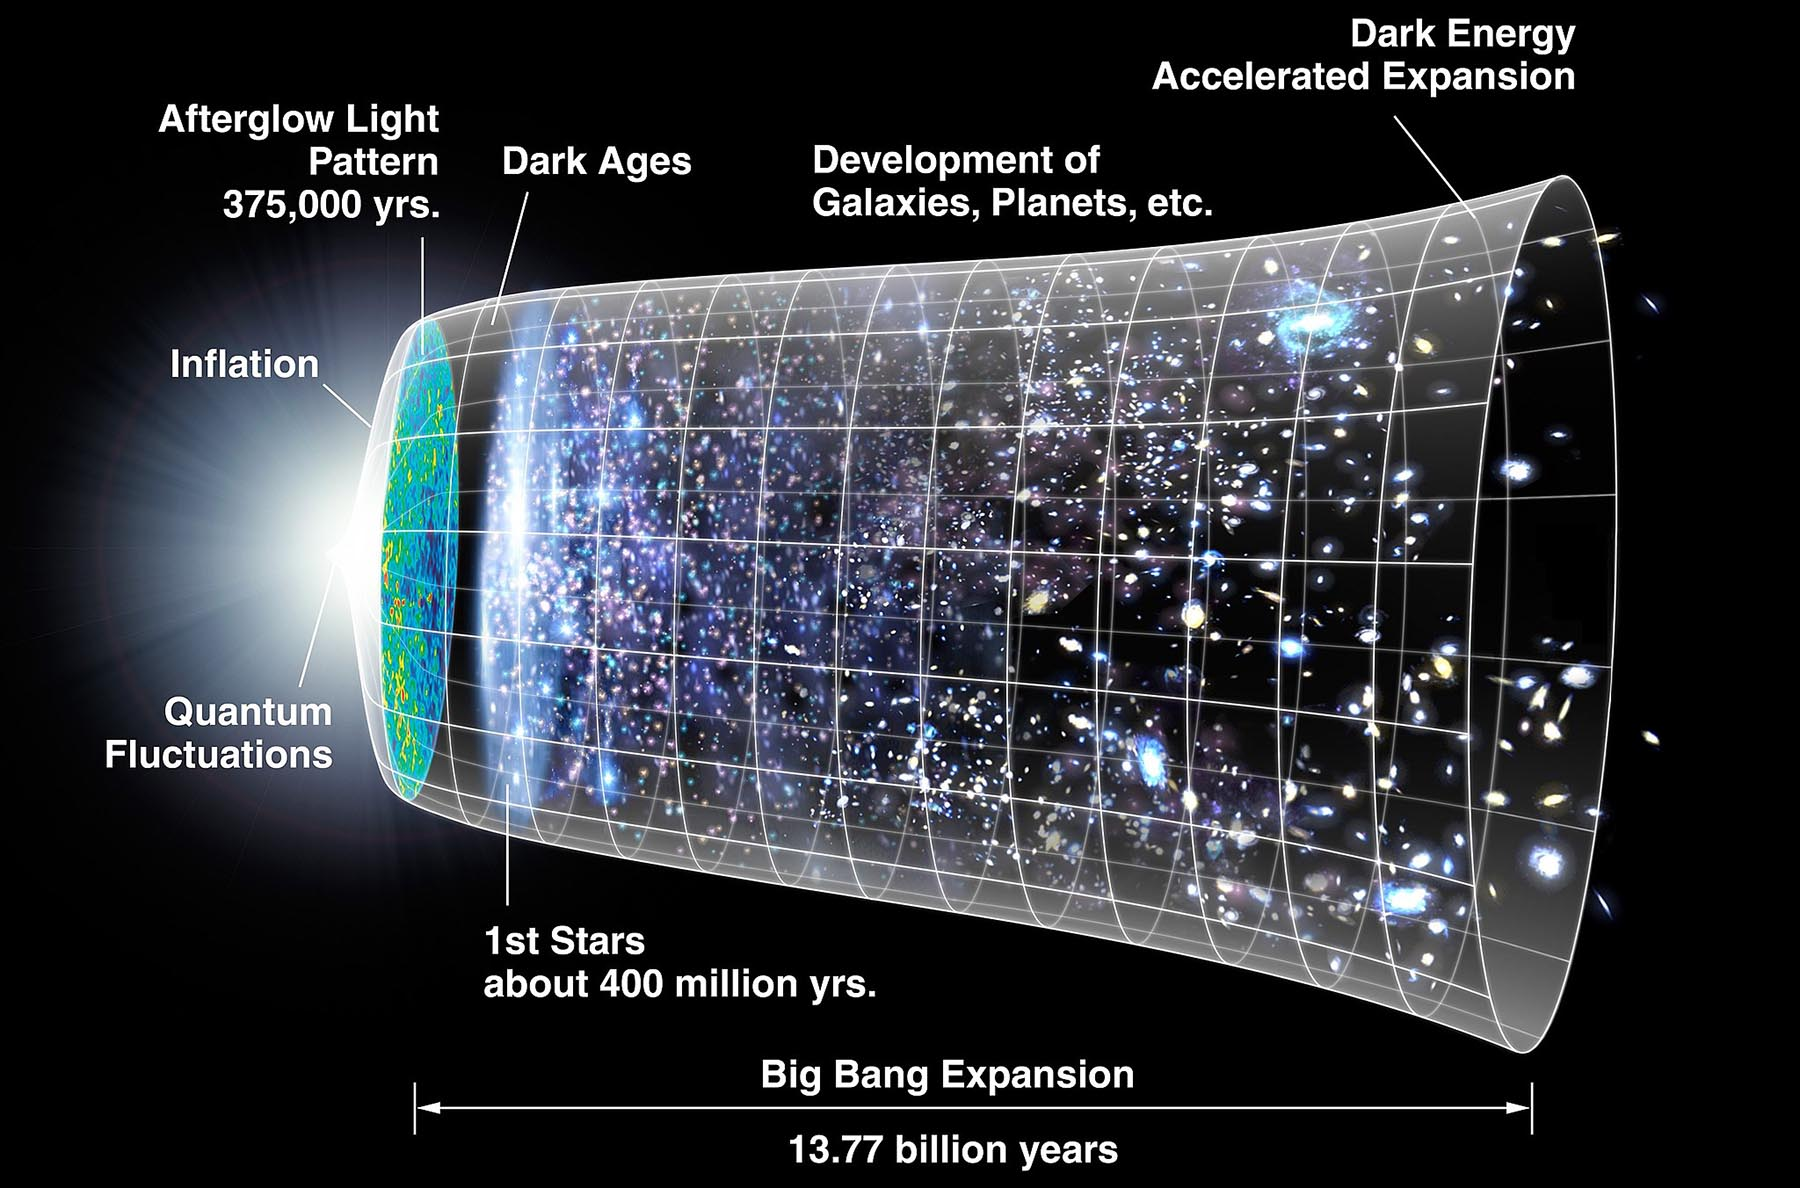 The standard model of a universe expanding at an accelerated rate is based on a result that could turn out to be a fluke, according to Prof. Subir Sarkar. Image credit - NASA/WMAP Science Team